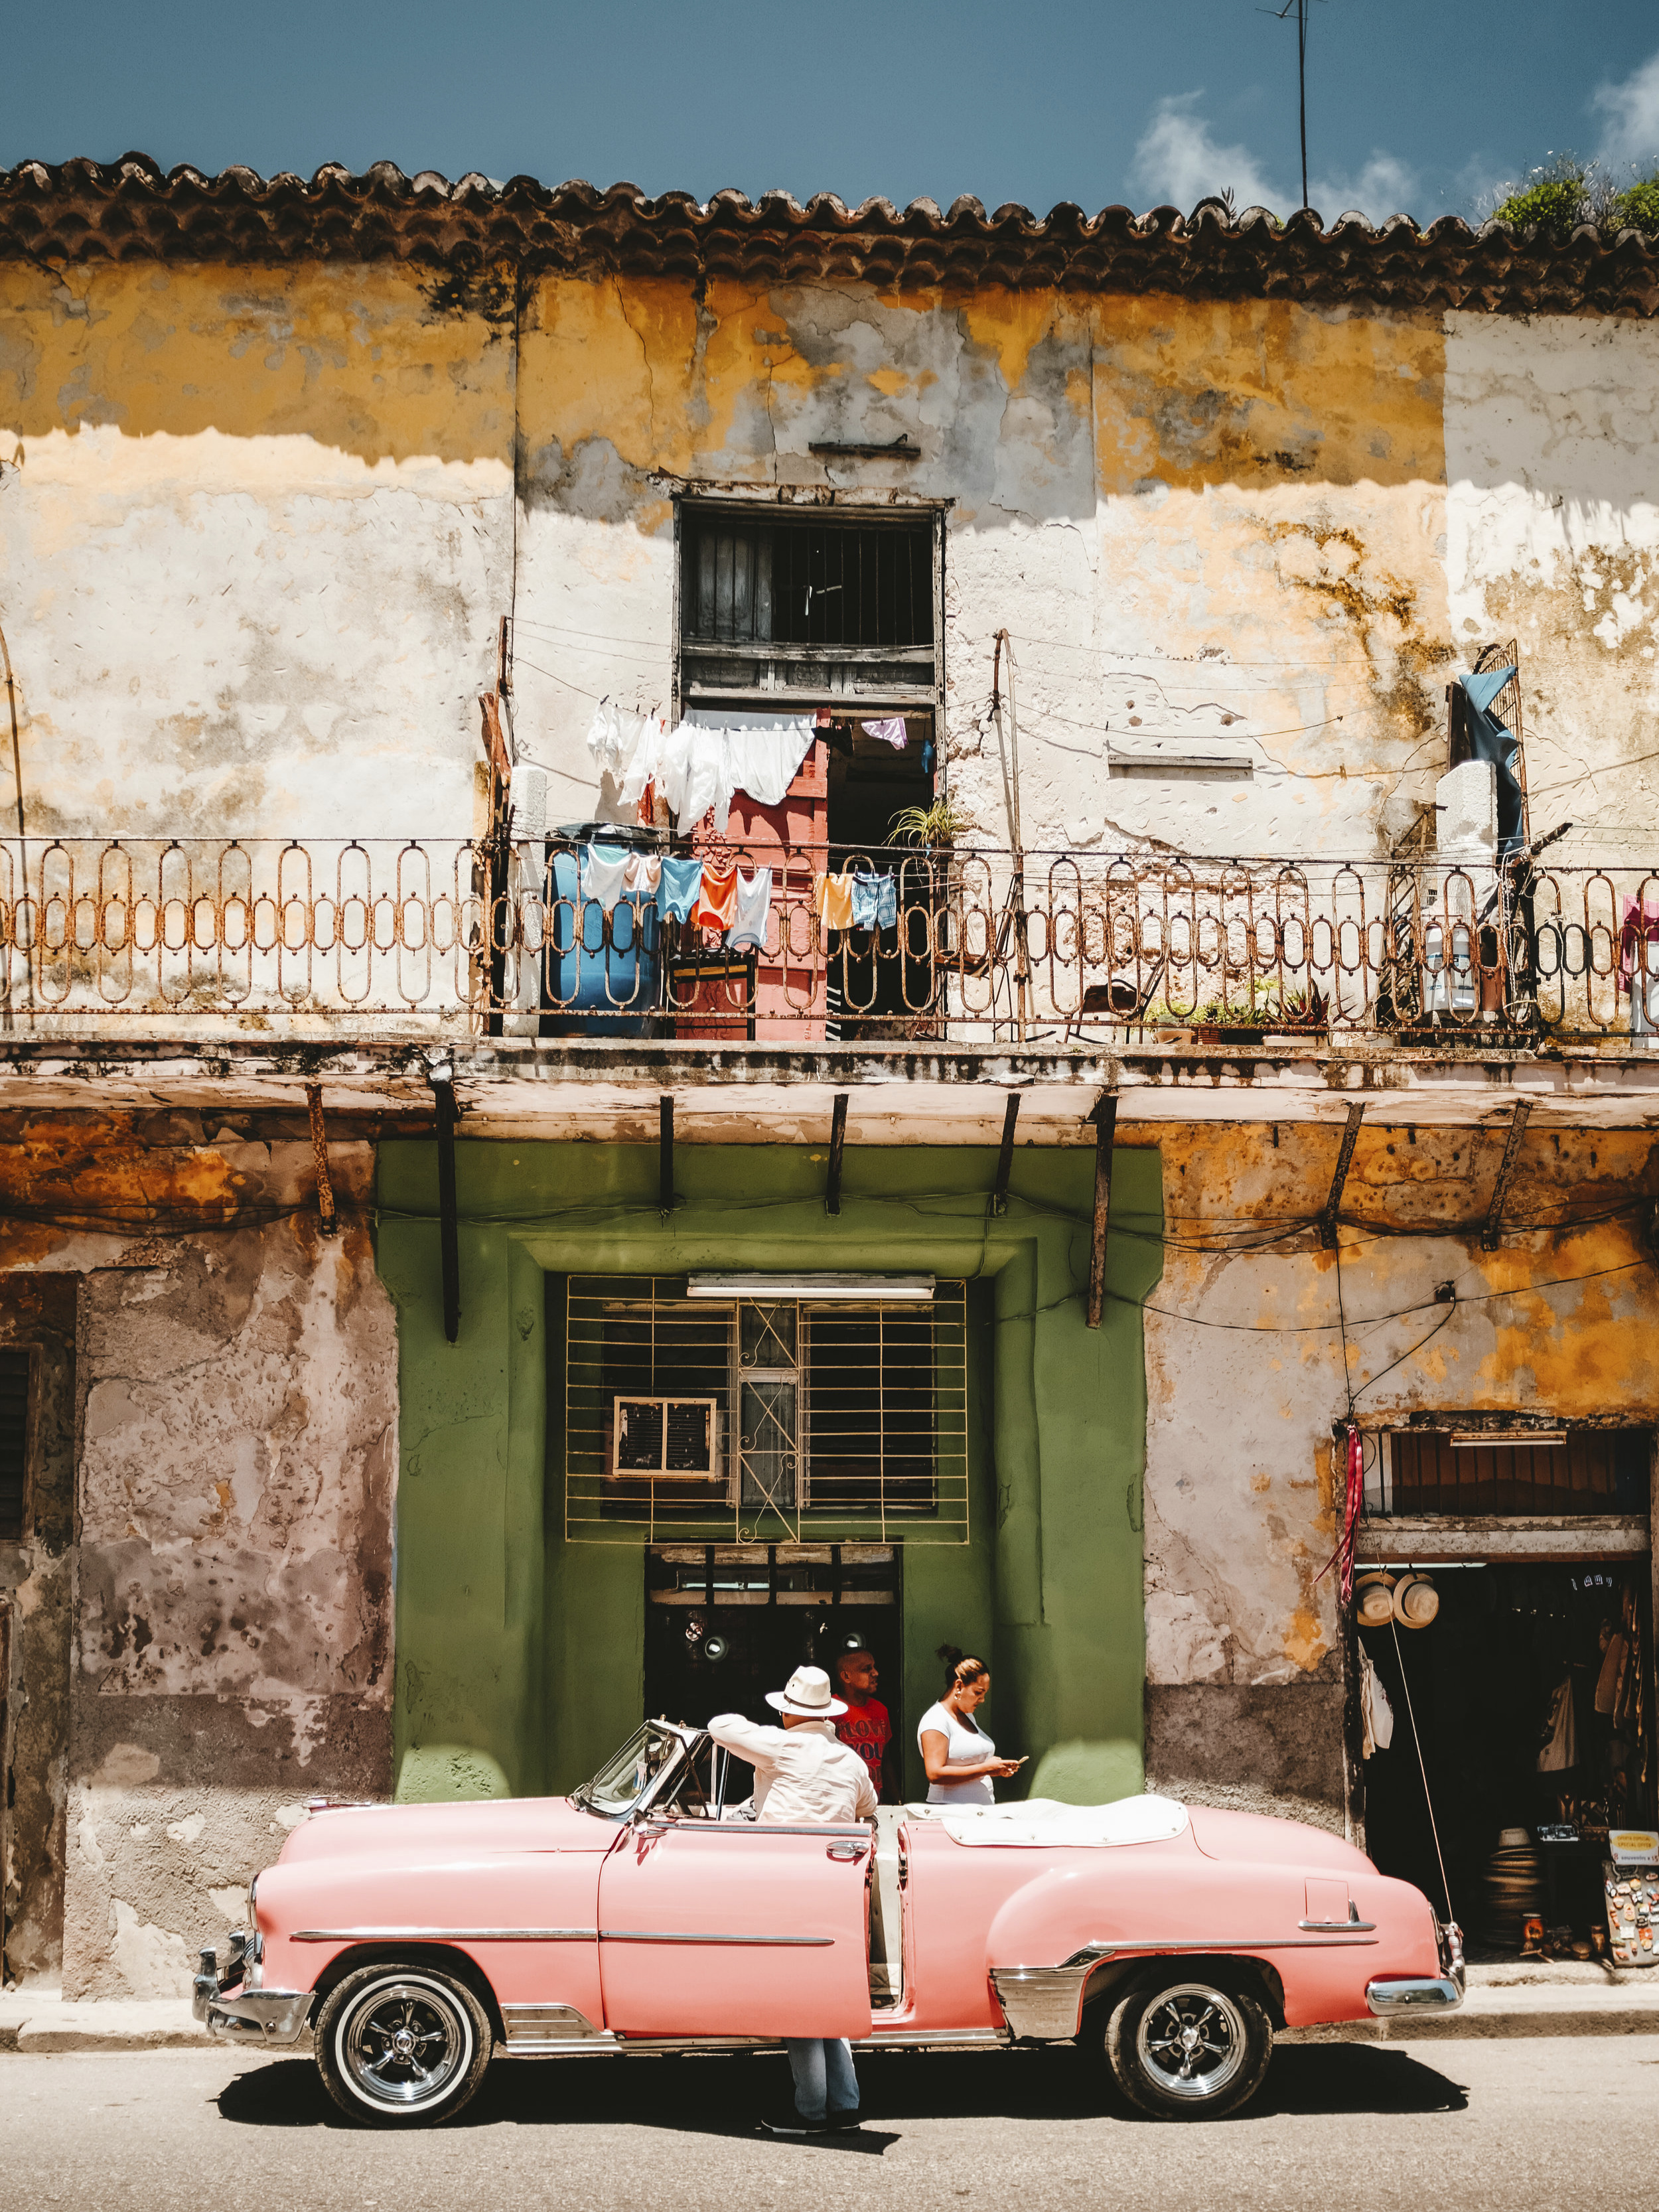 One of Cuba's iconic classic cars